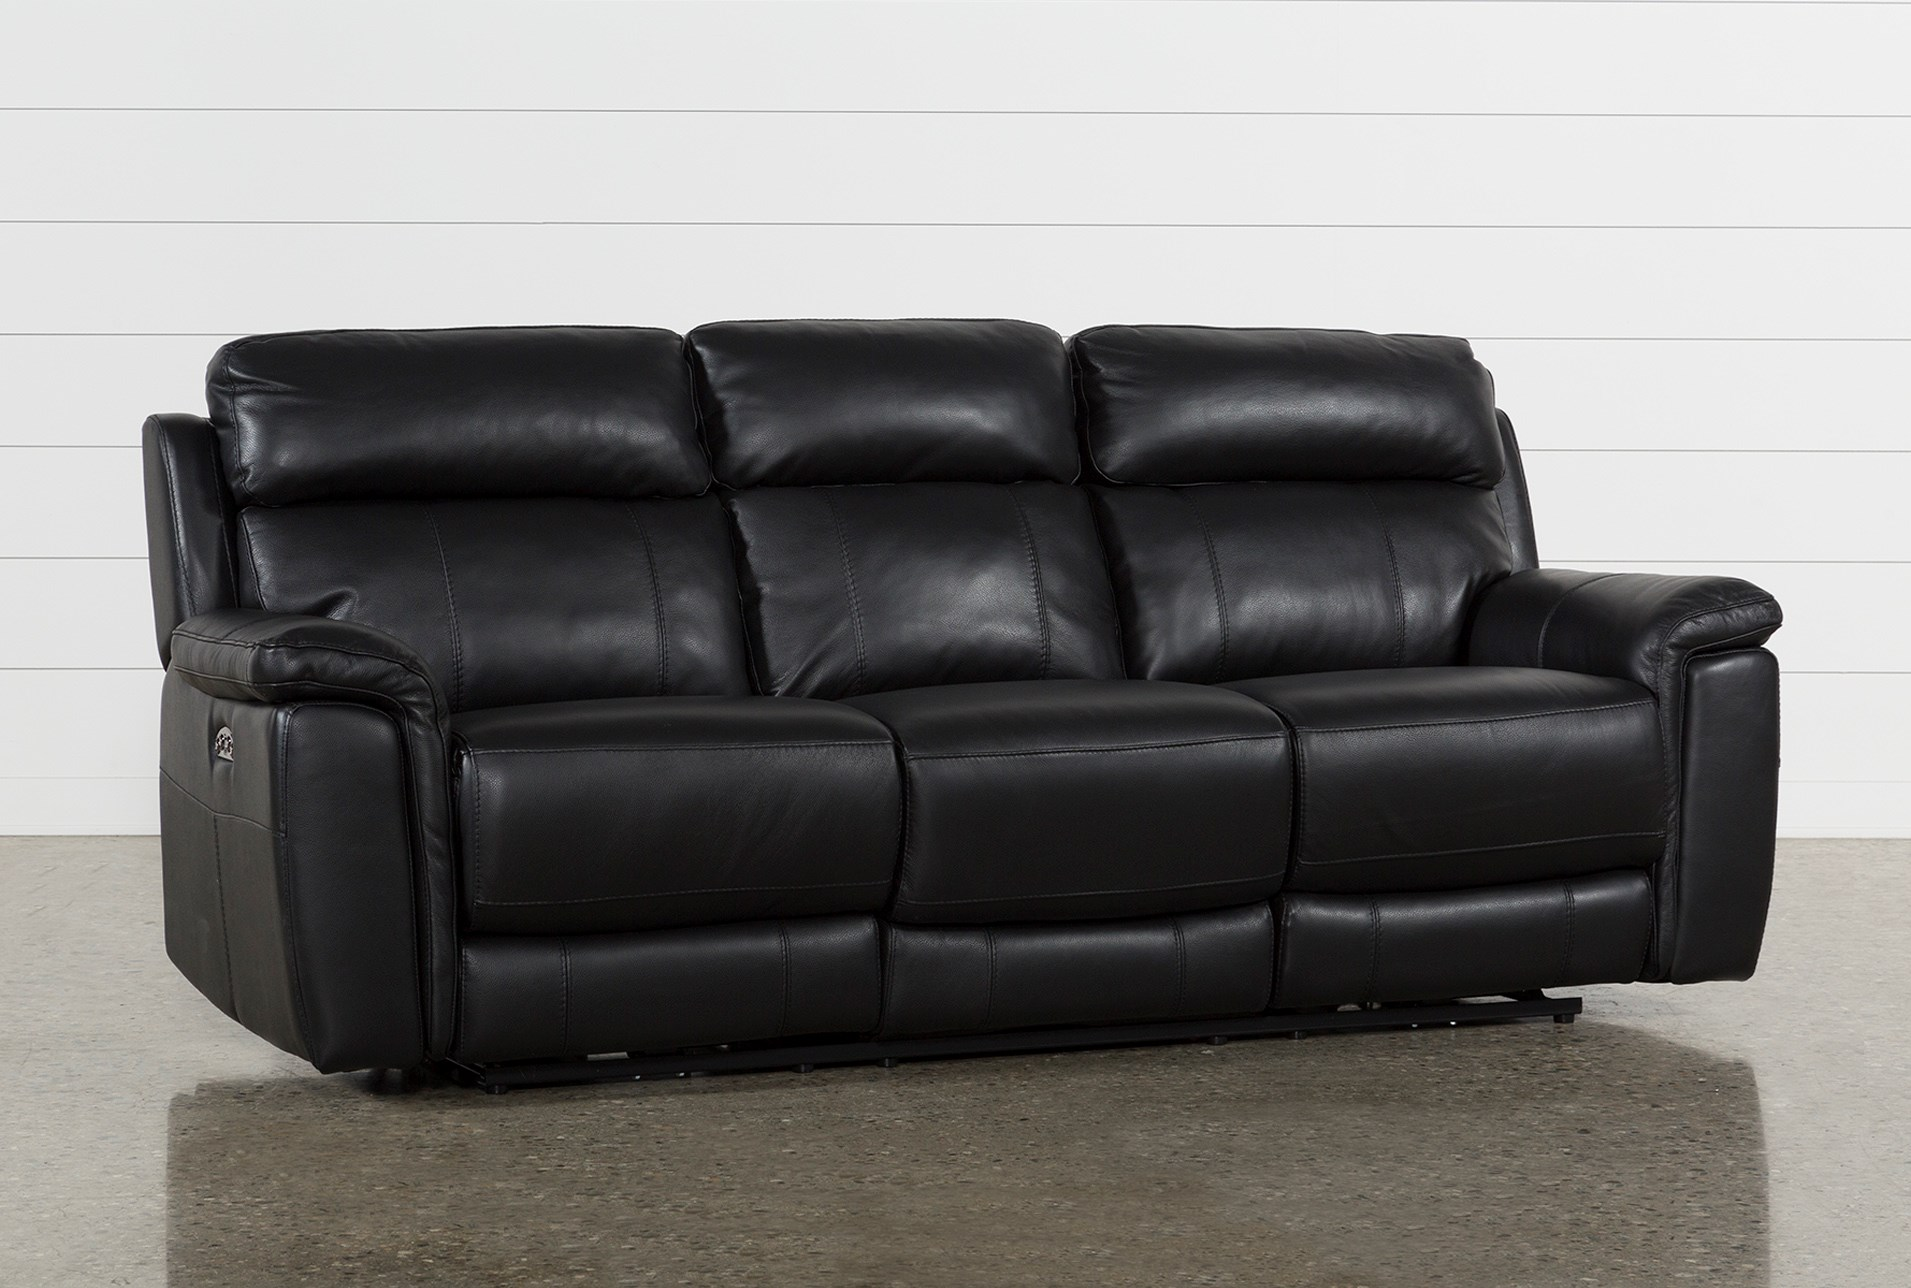 black leather reclining sofa. Dino Black Leather Power Reclining Sofa W/Power Headrest \u0026amp; Usb (Qty: 1) Has Been Successfully Added To Your Cart. M